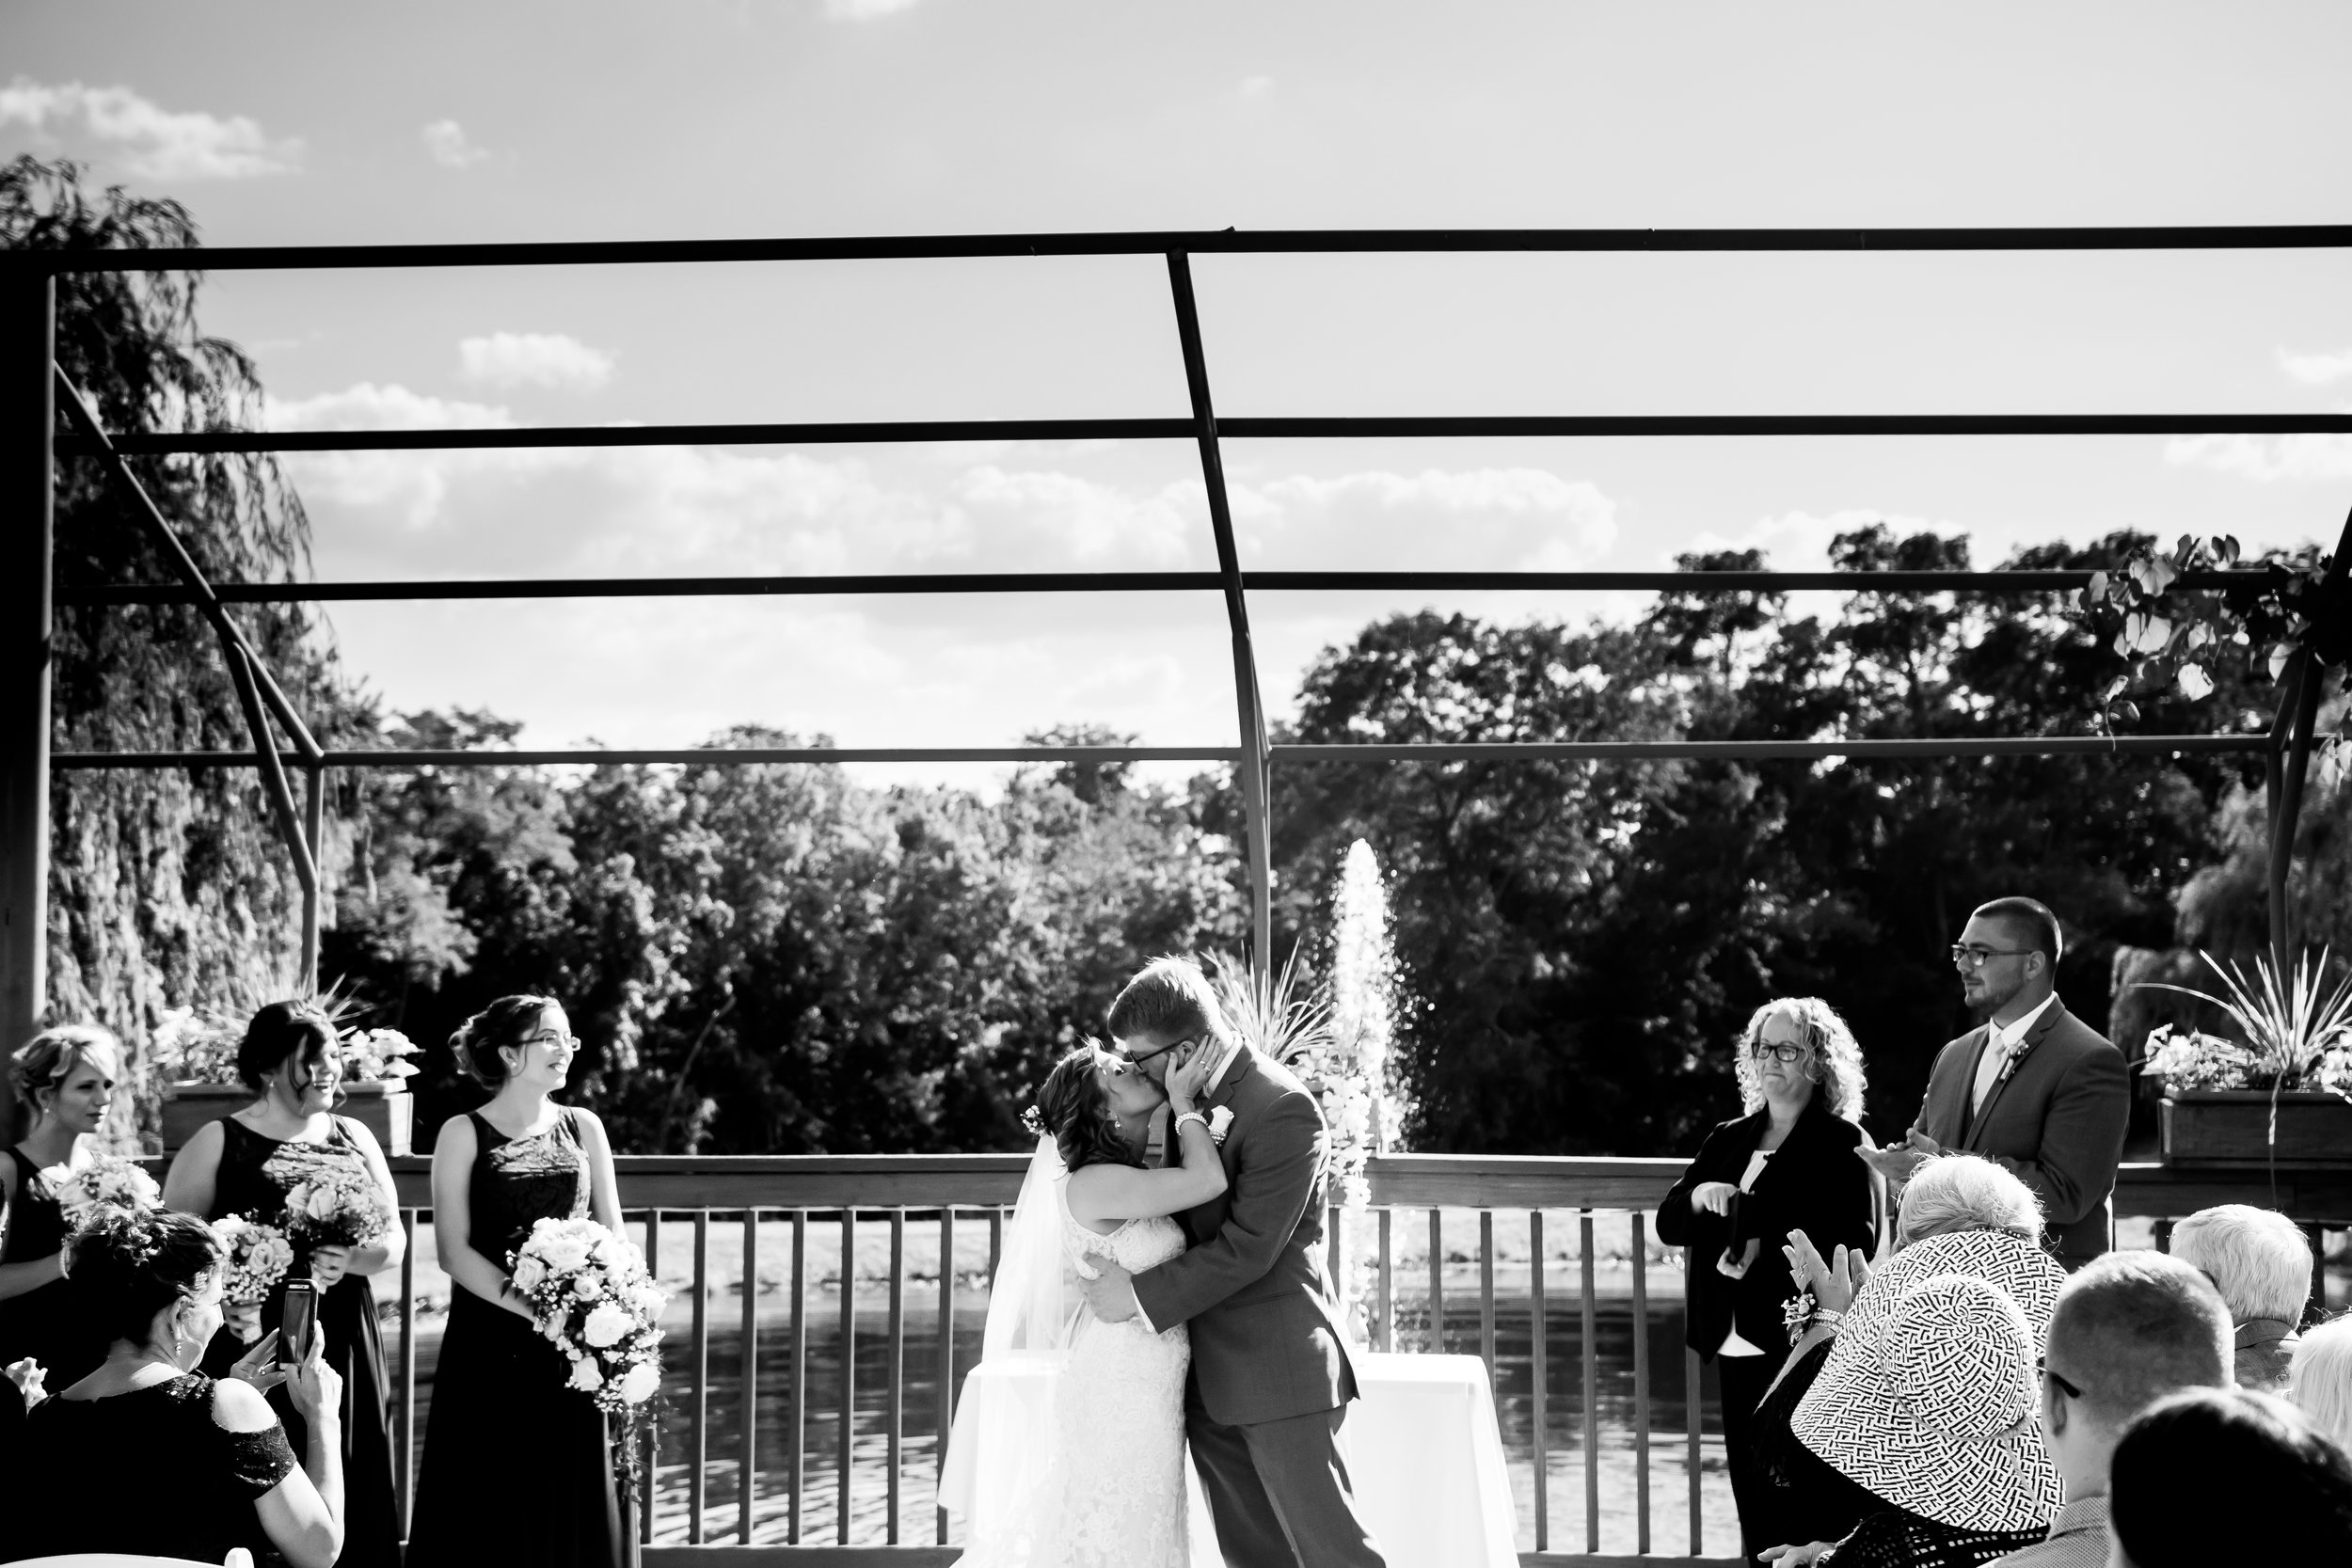 Wedding_Photography_Vinings-666.jpg